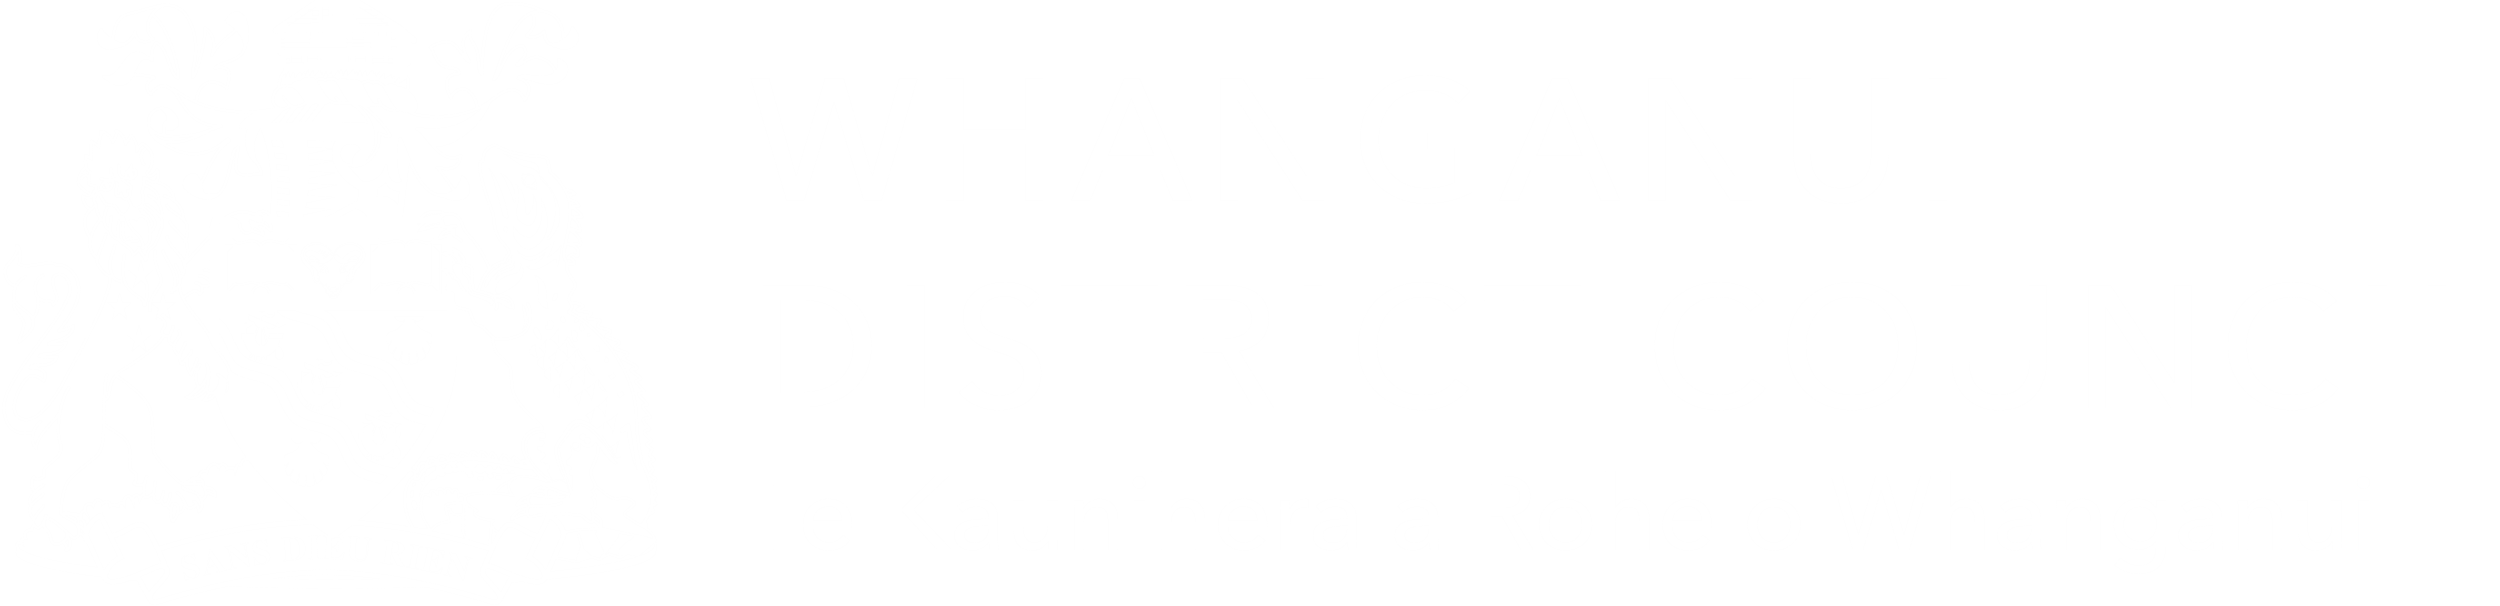 Whanganui District Council Walkways | wdc